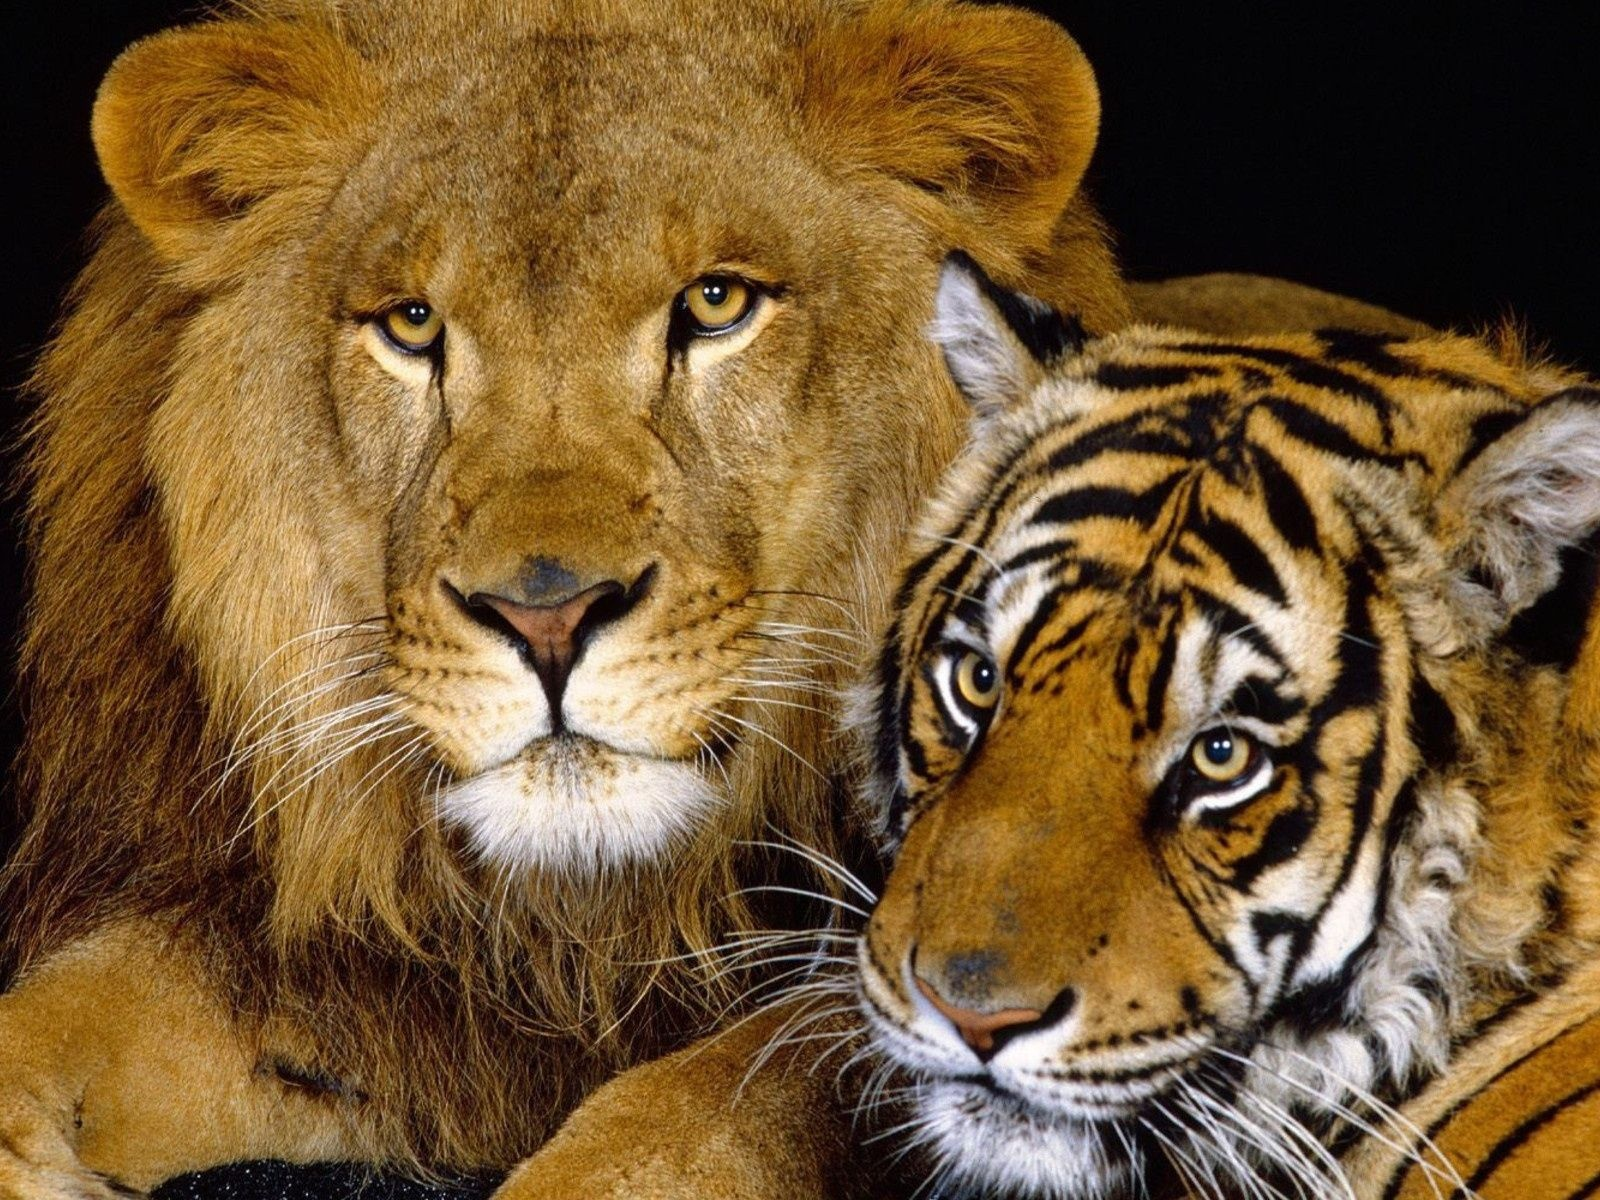 Tiger And Lion1